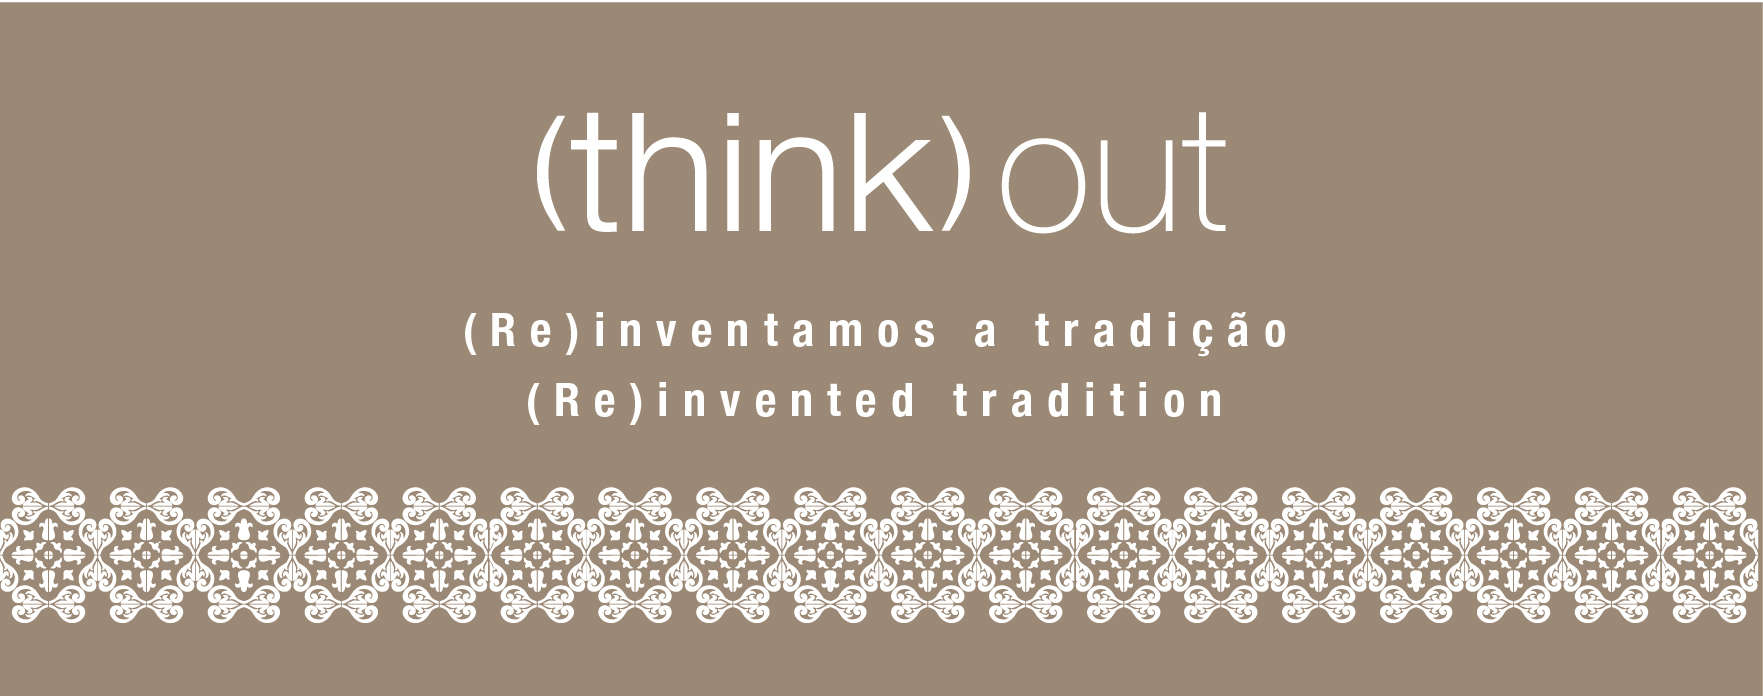 (Re)inventamos a tradição - (Re)invented tradition